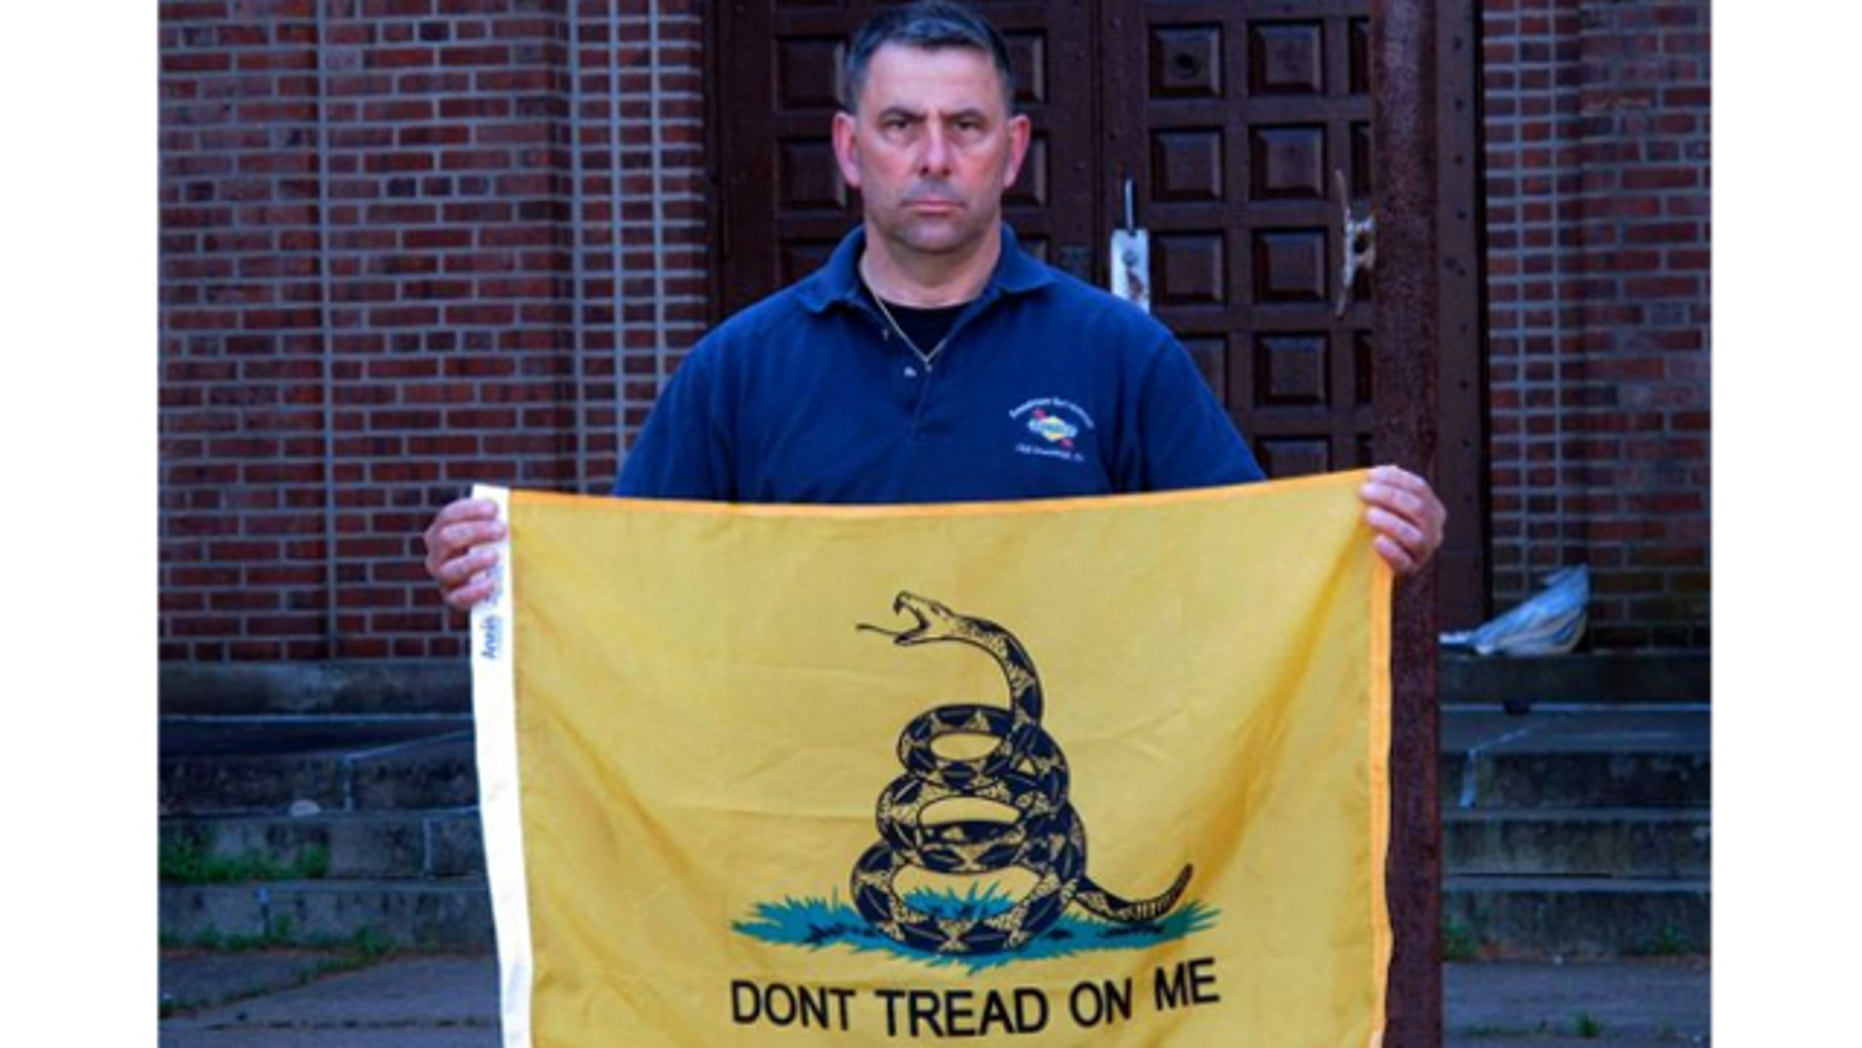 April 26, 2013: Peter Parente, president of the United Veterans Memorial and Patriotic Association, holds a Gadsden flag outside an armory in New Rochelle, N.Y.